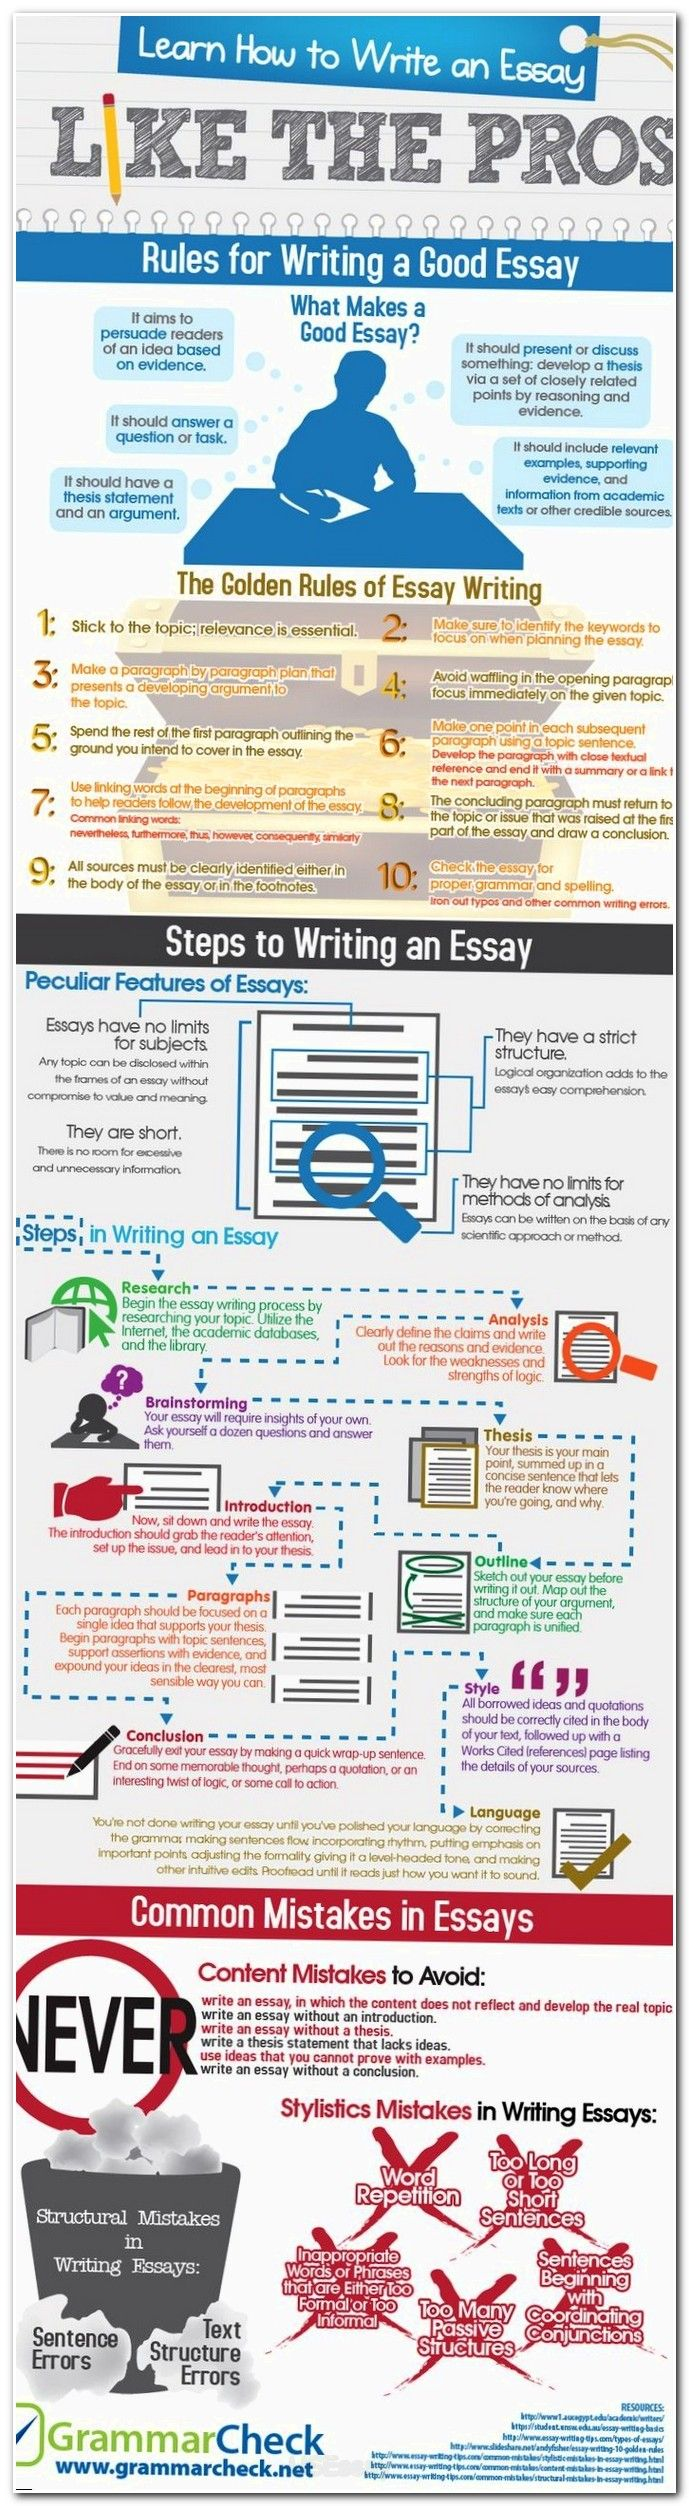 best apa format website ideas apa style paper  structuring law essay topics structure of a law essay in the same way that you have a thesis to indicate the point of the essay you should have a topic